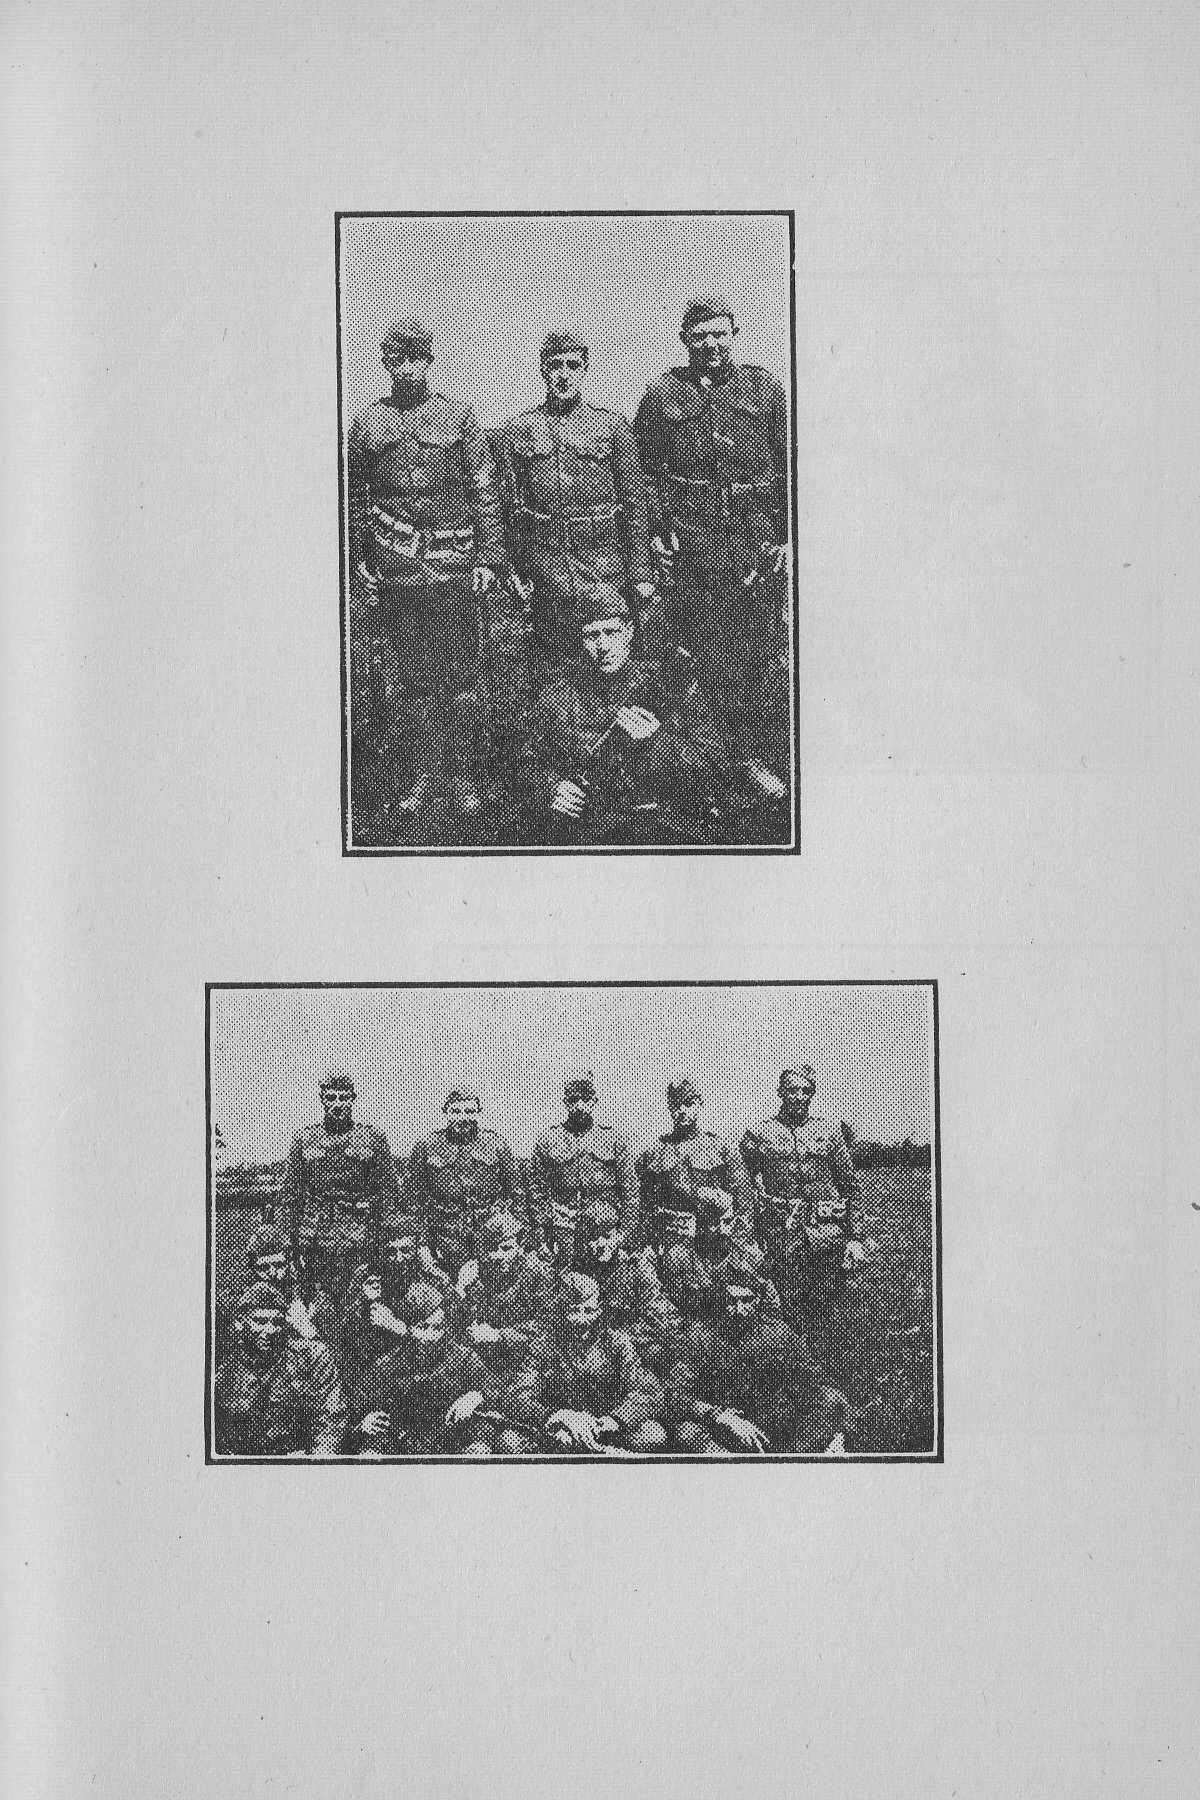 History of Company G 314th Infanty - Page 032 photo 2